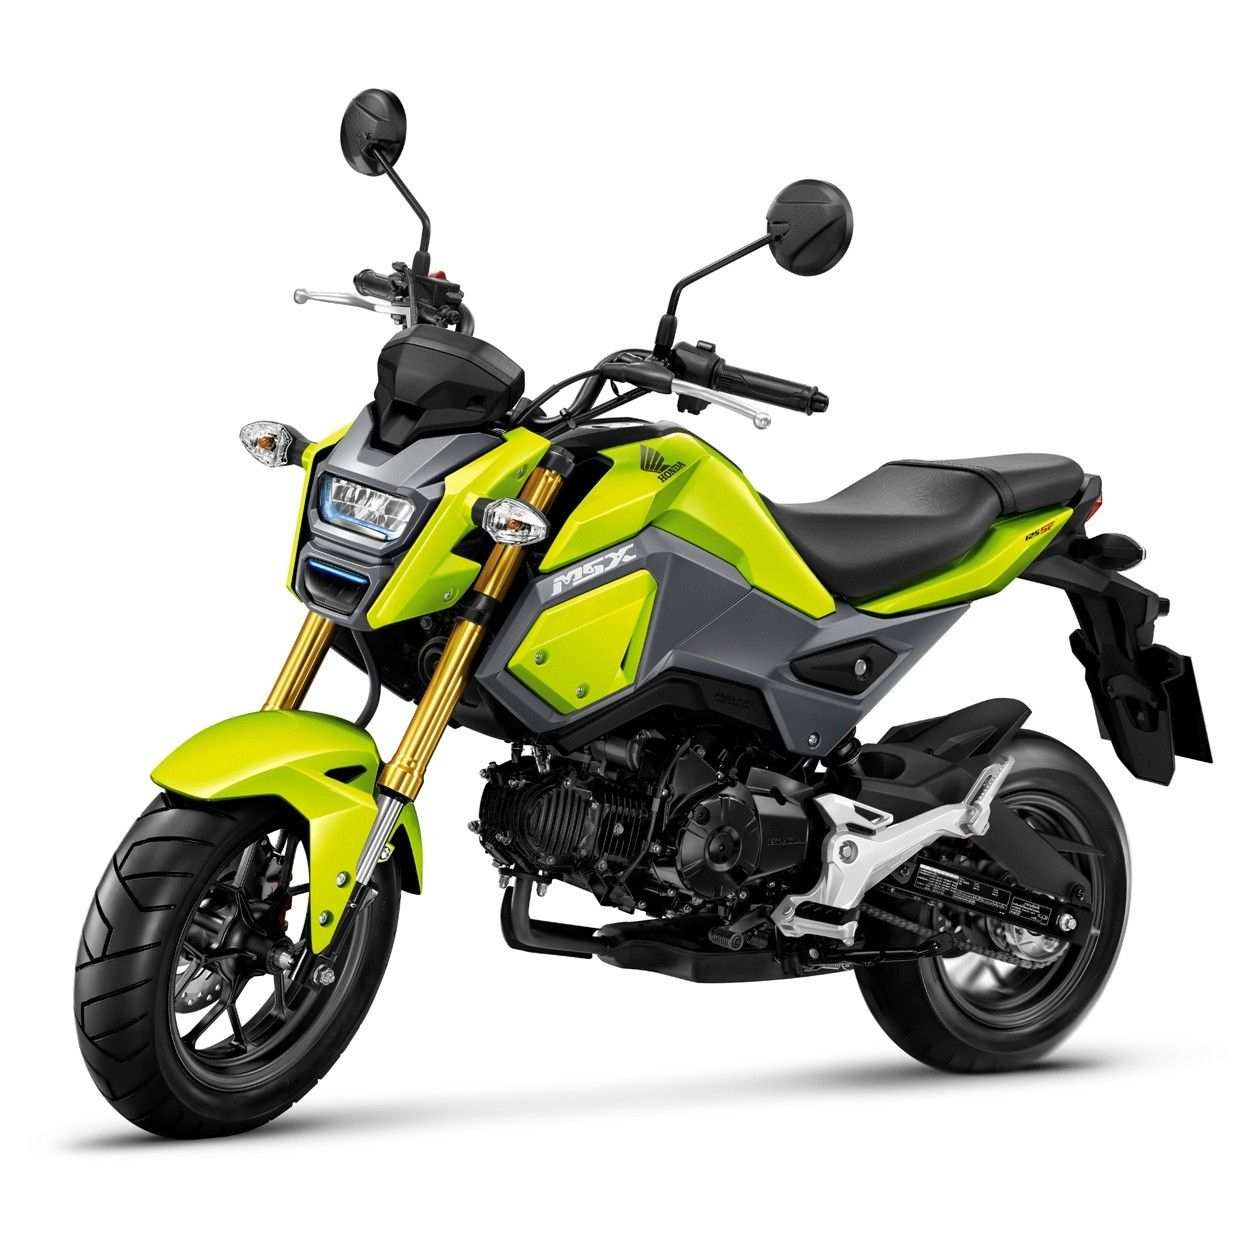 79 All New 2020 Honda Grom Colors Picture with 2020 Honda Grom Colors